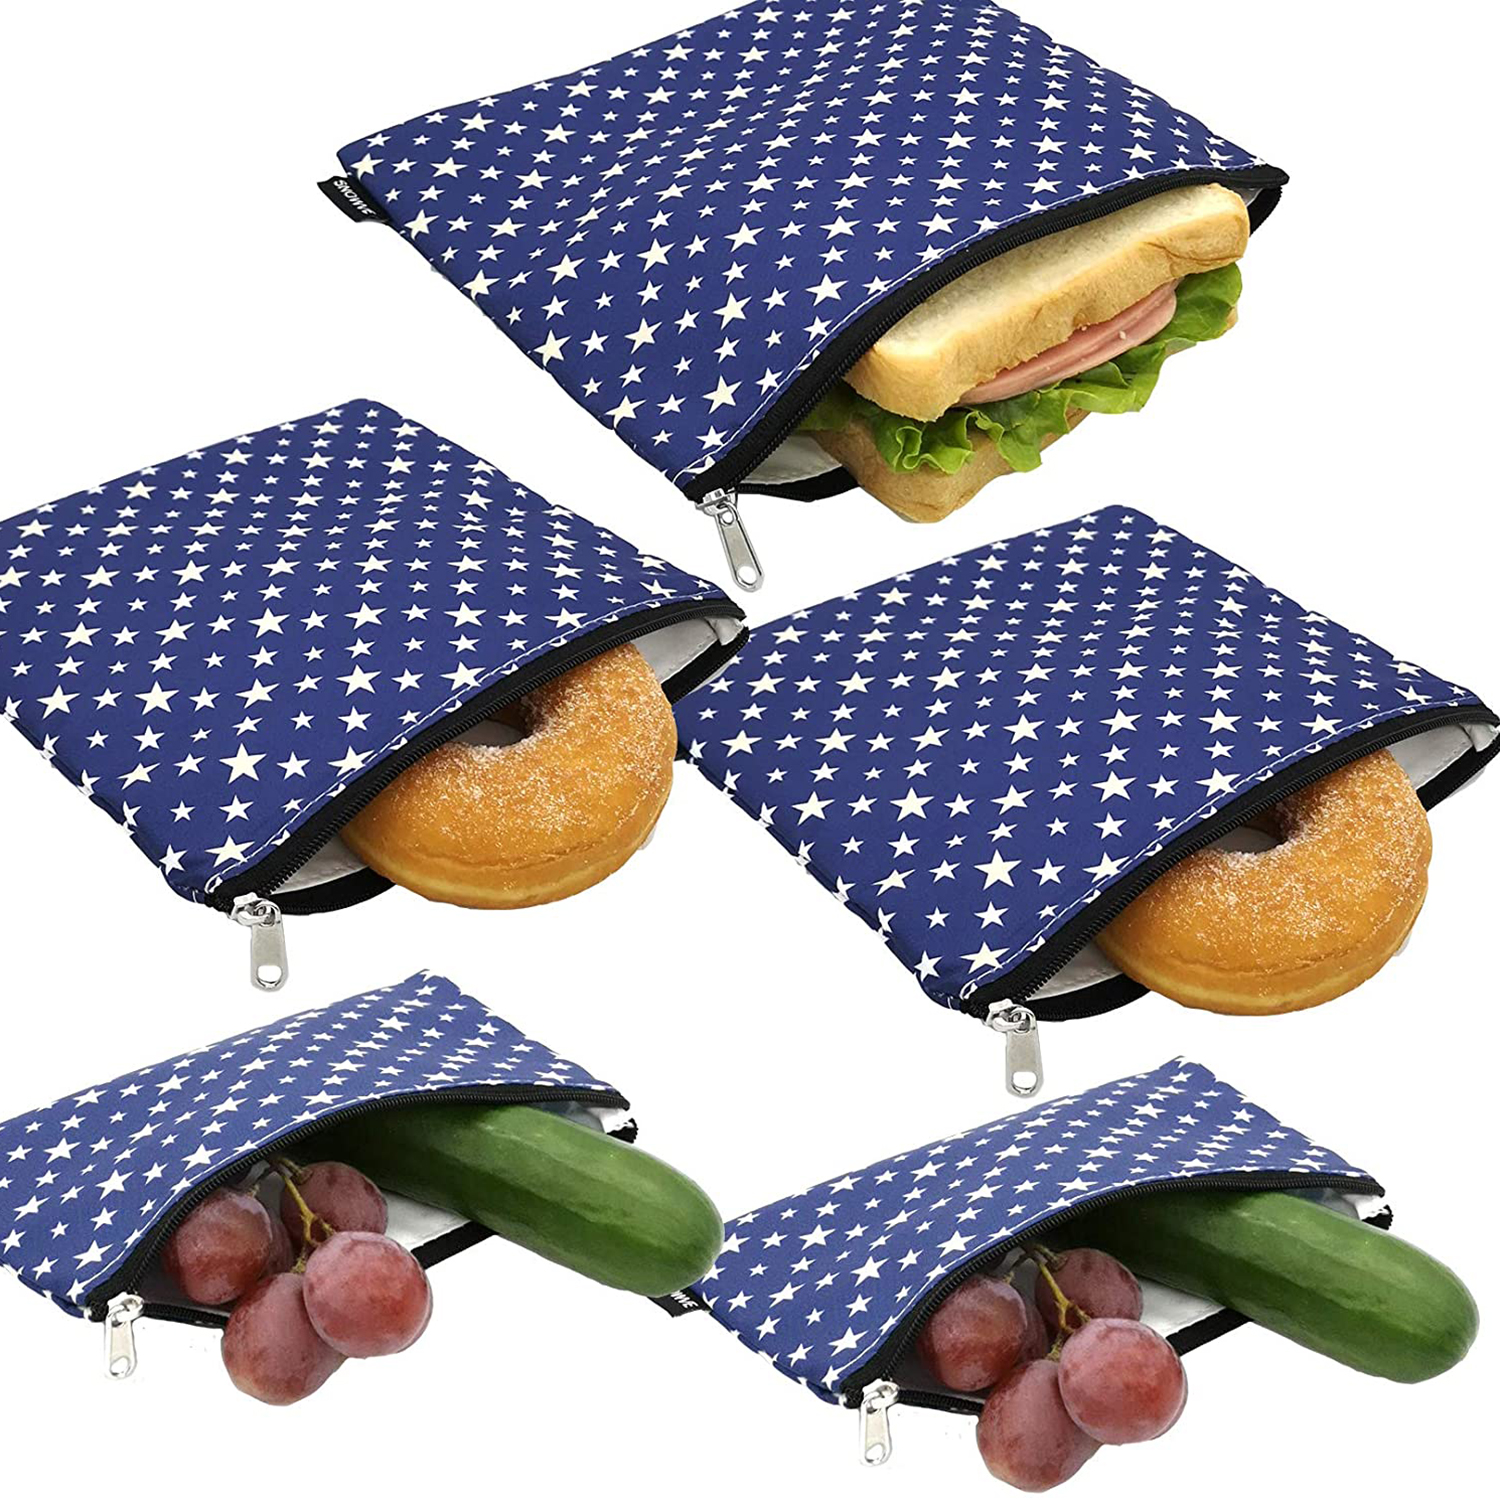 Reusable Snack Bags Sandwich Bags - Dual Layer Eco Friendly Dishwasher Safe Lunch Baggies